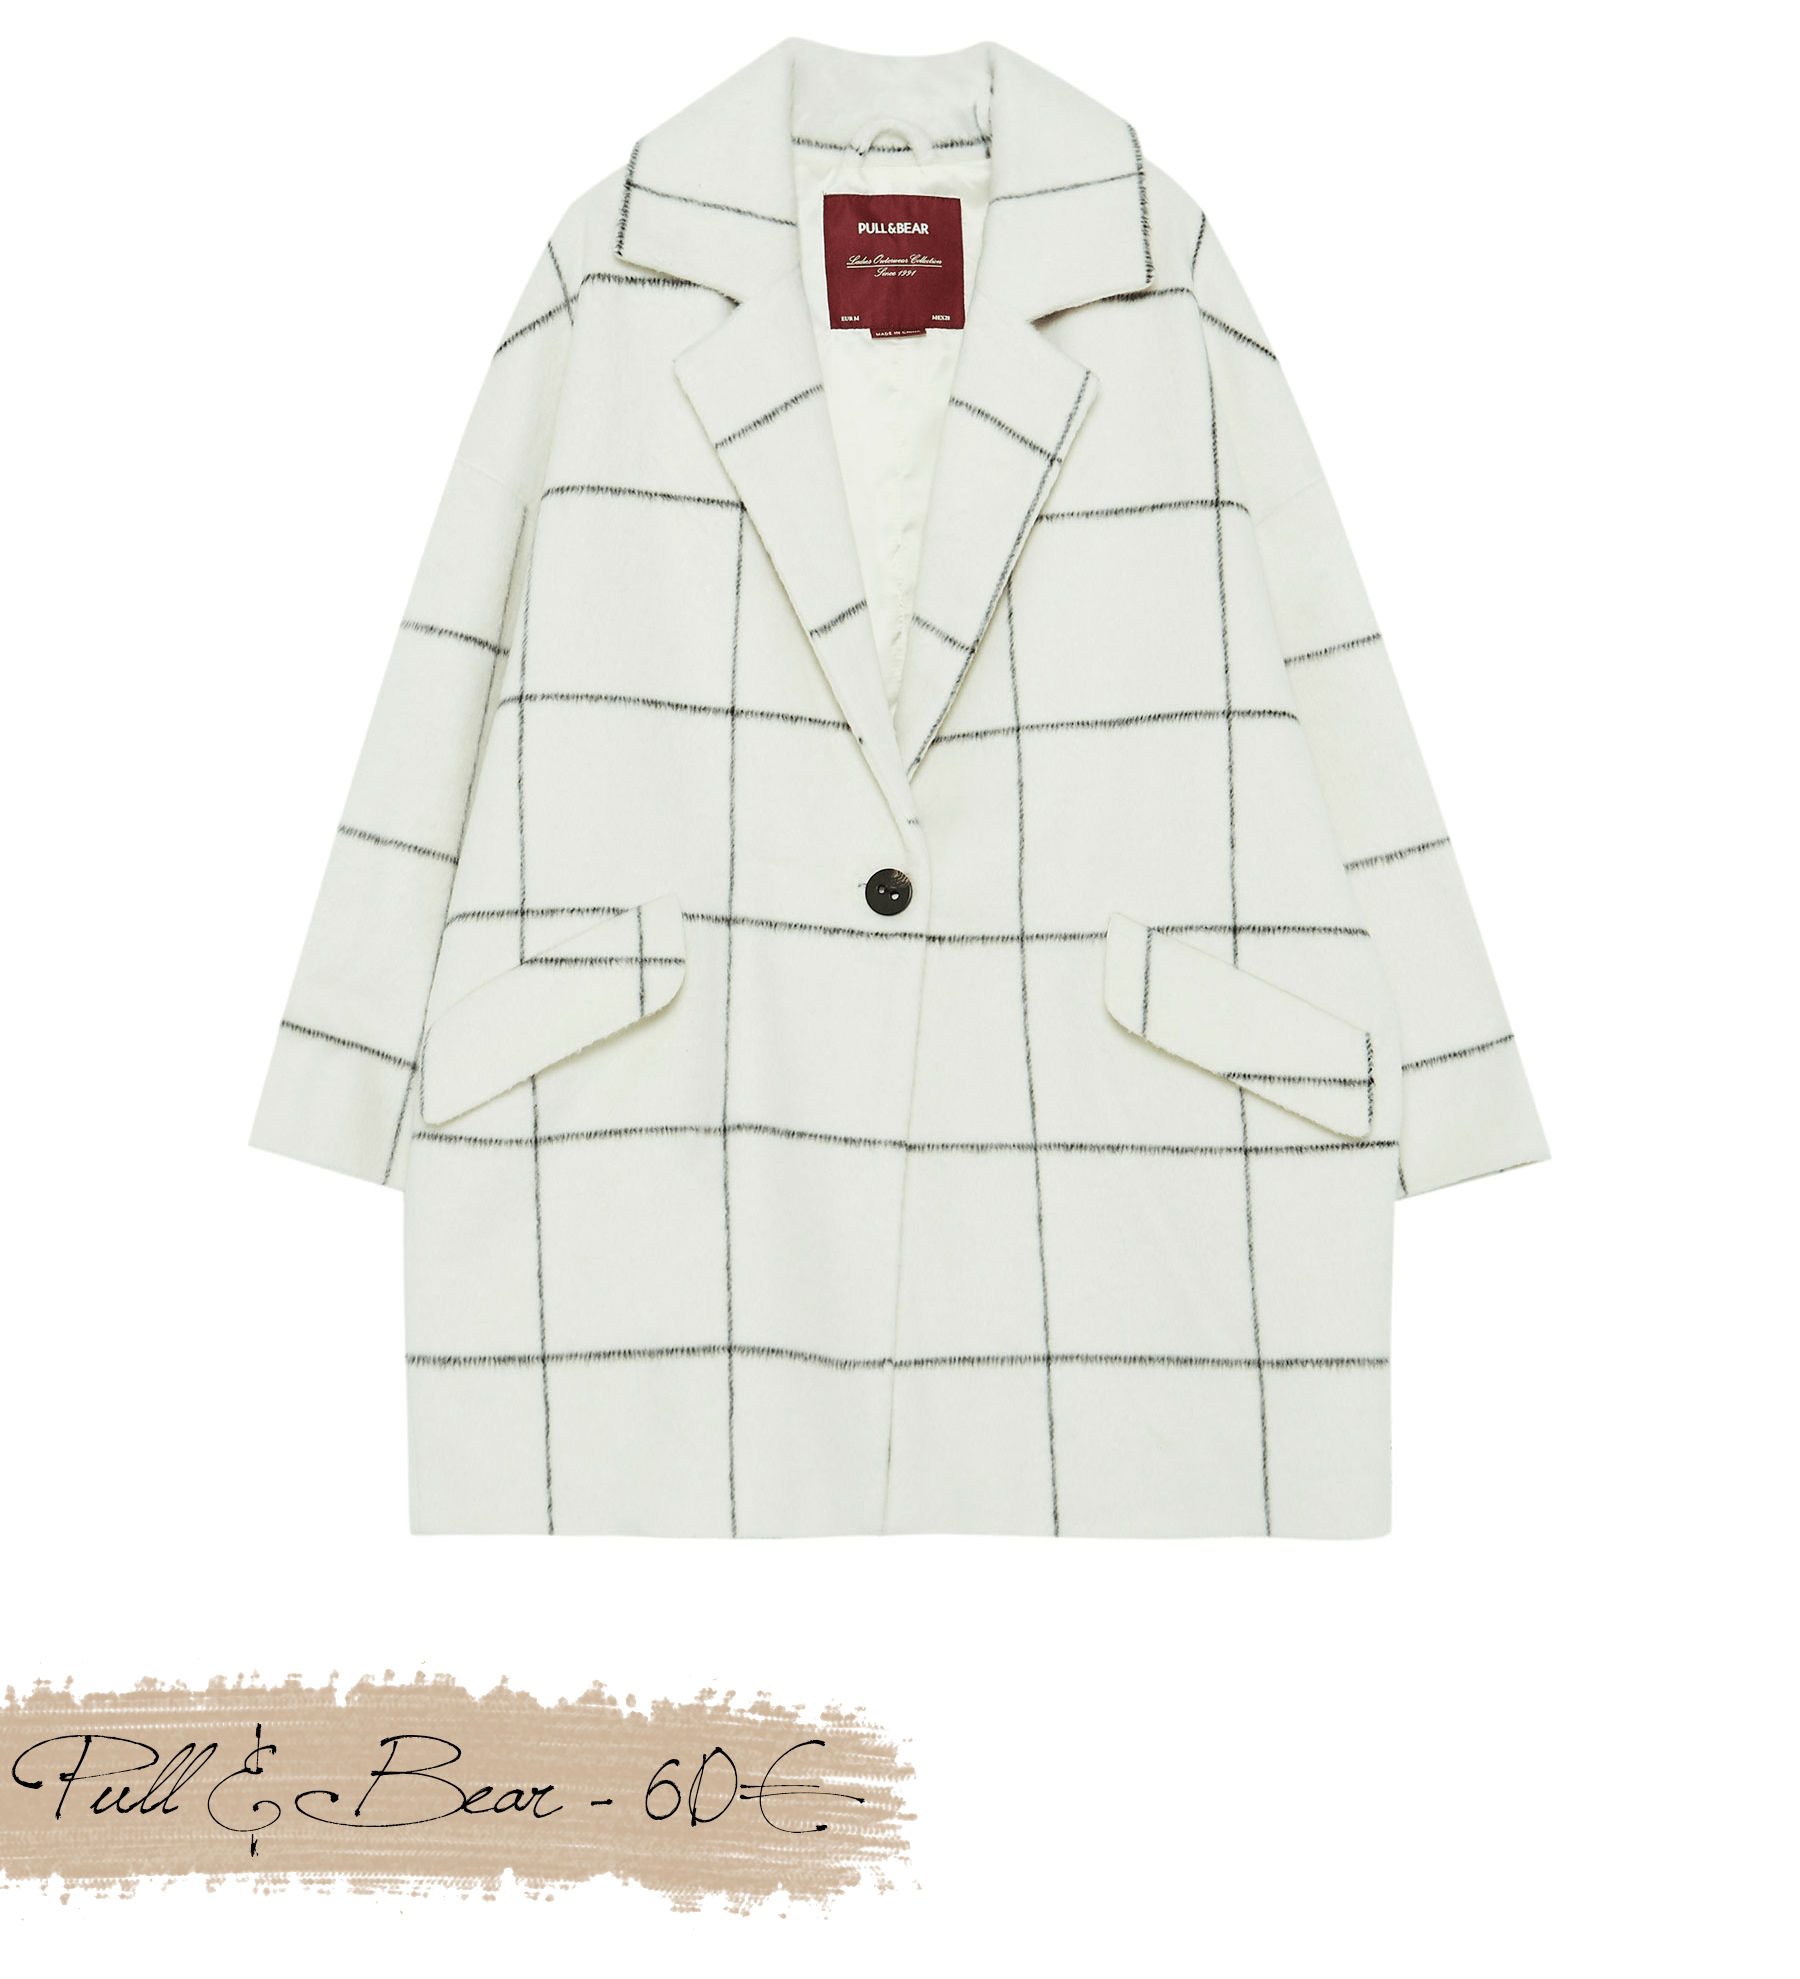 manteau-pull-and-bear-907914810-1512379204112.png